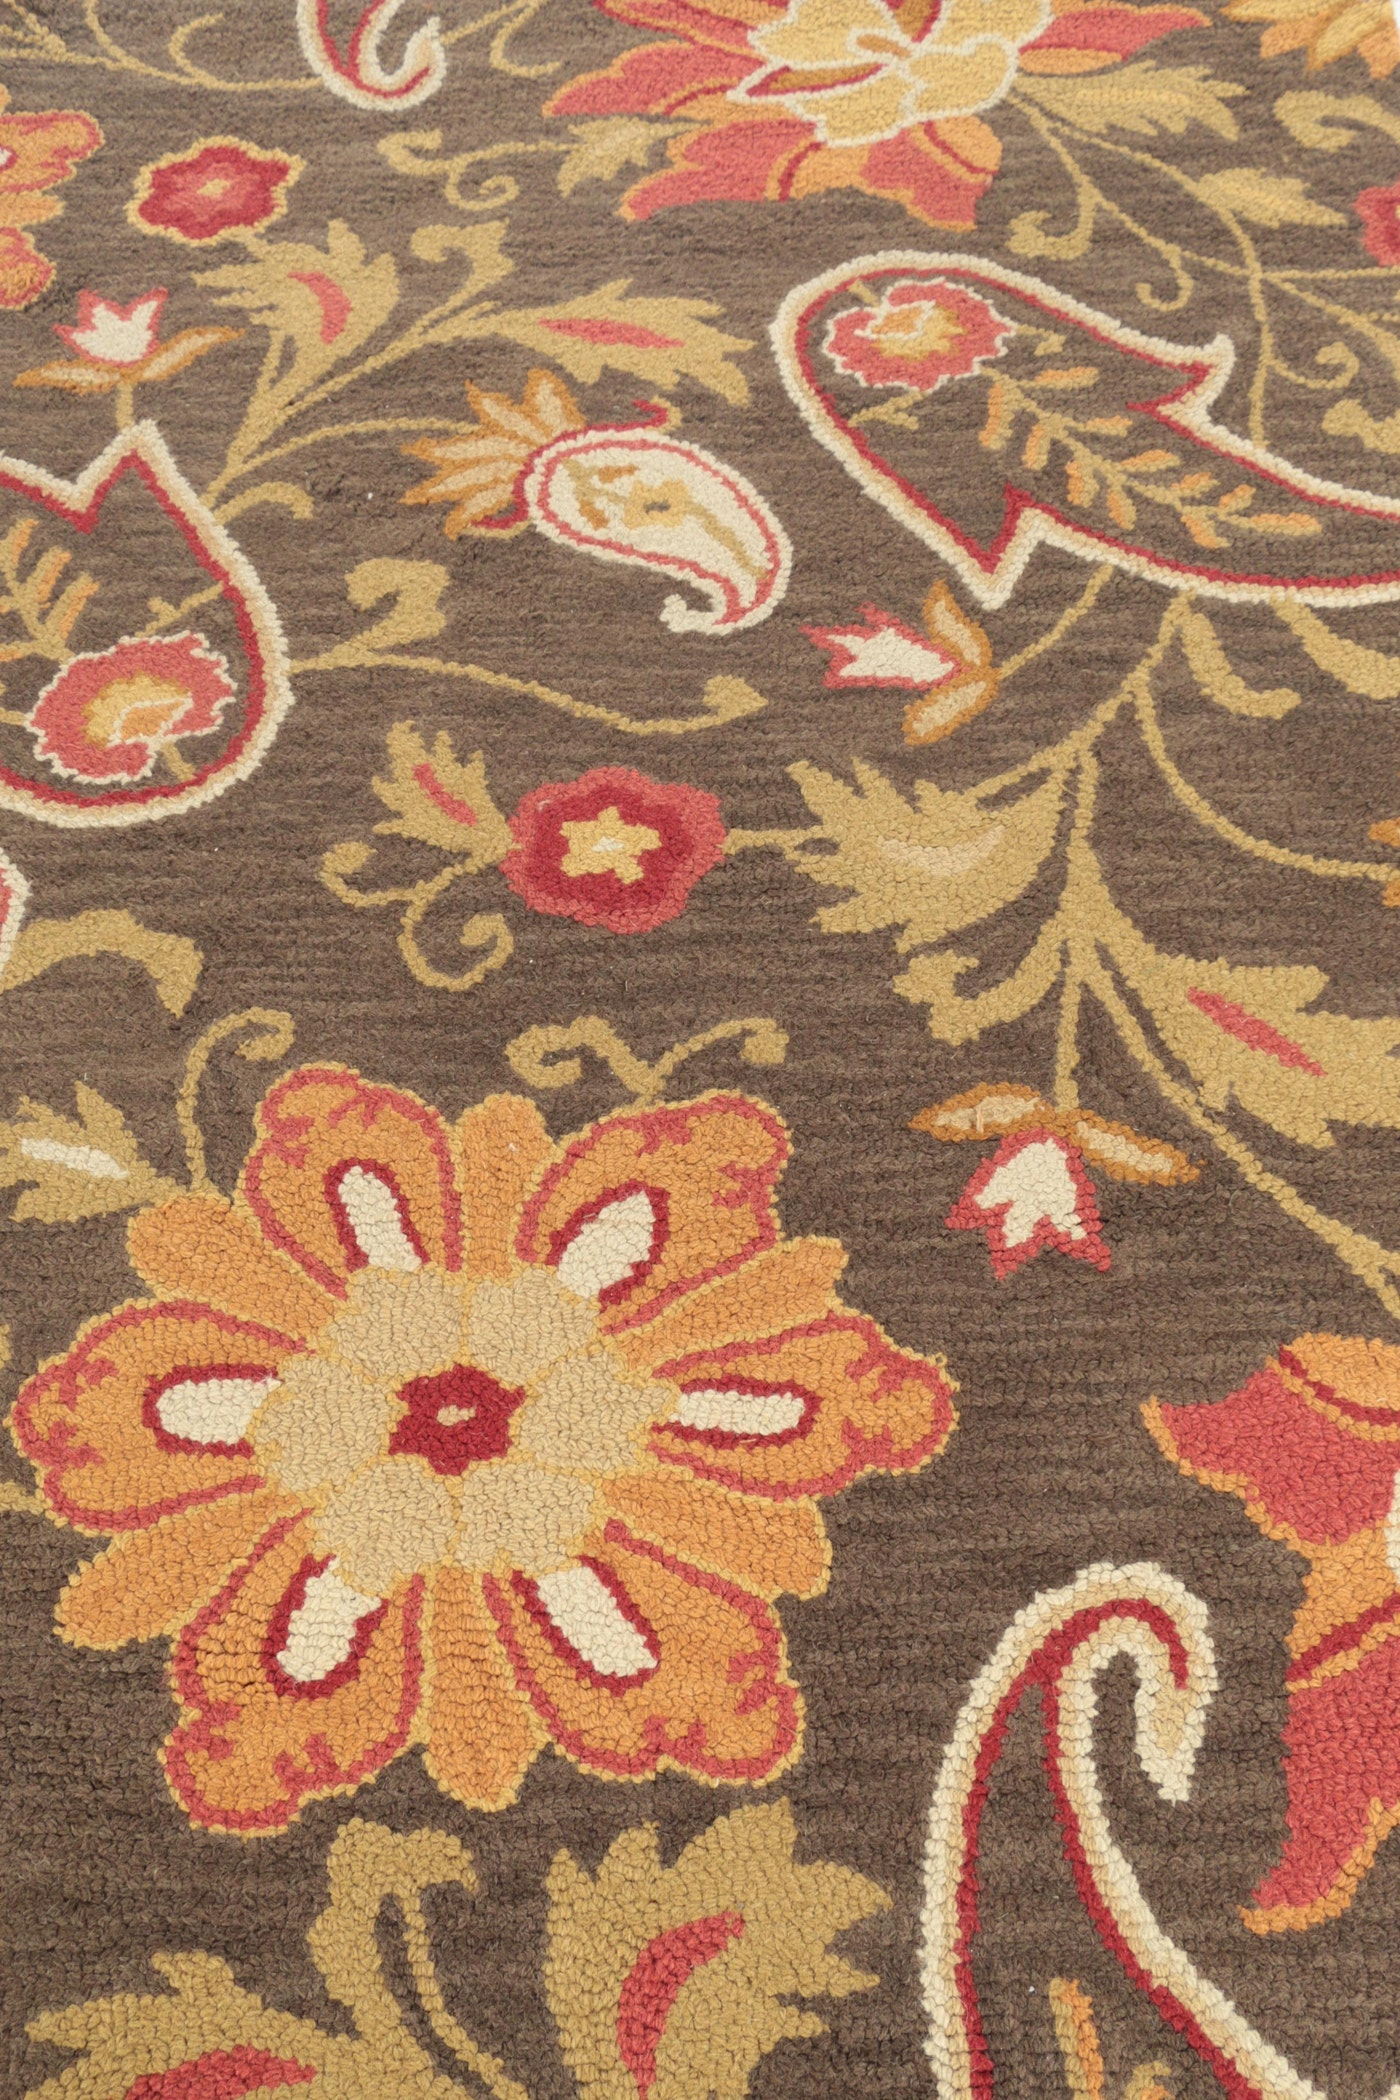 Hand Hooked Indian Quot Jacobean Floral Quot Wool Area Rug By